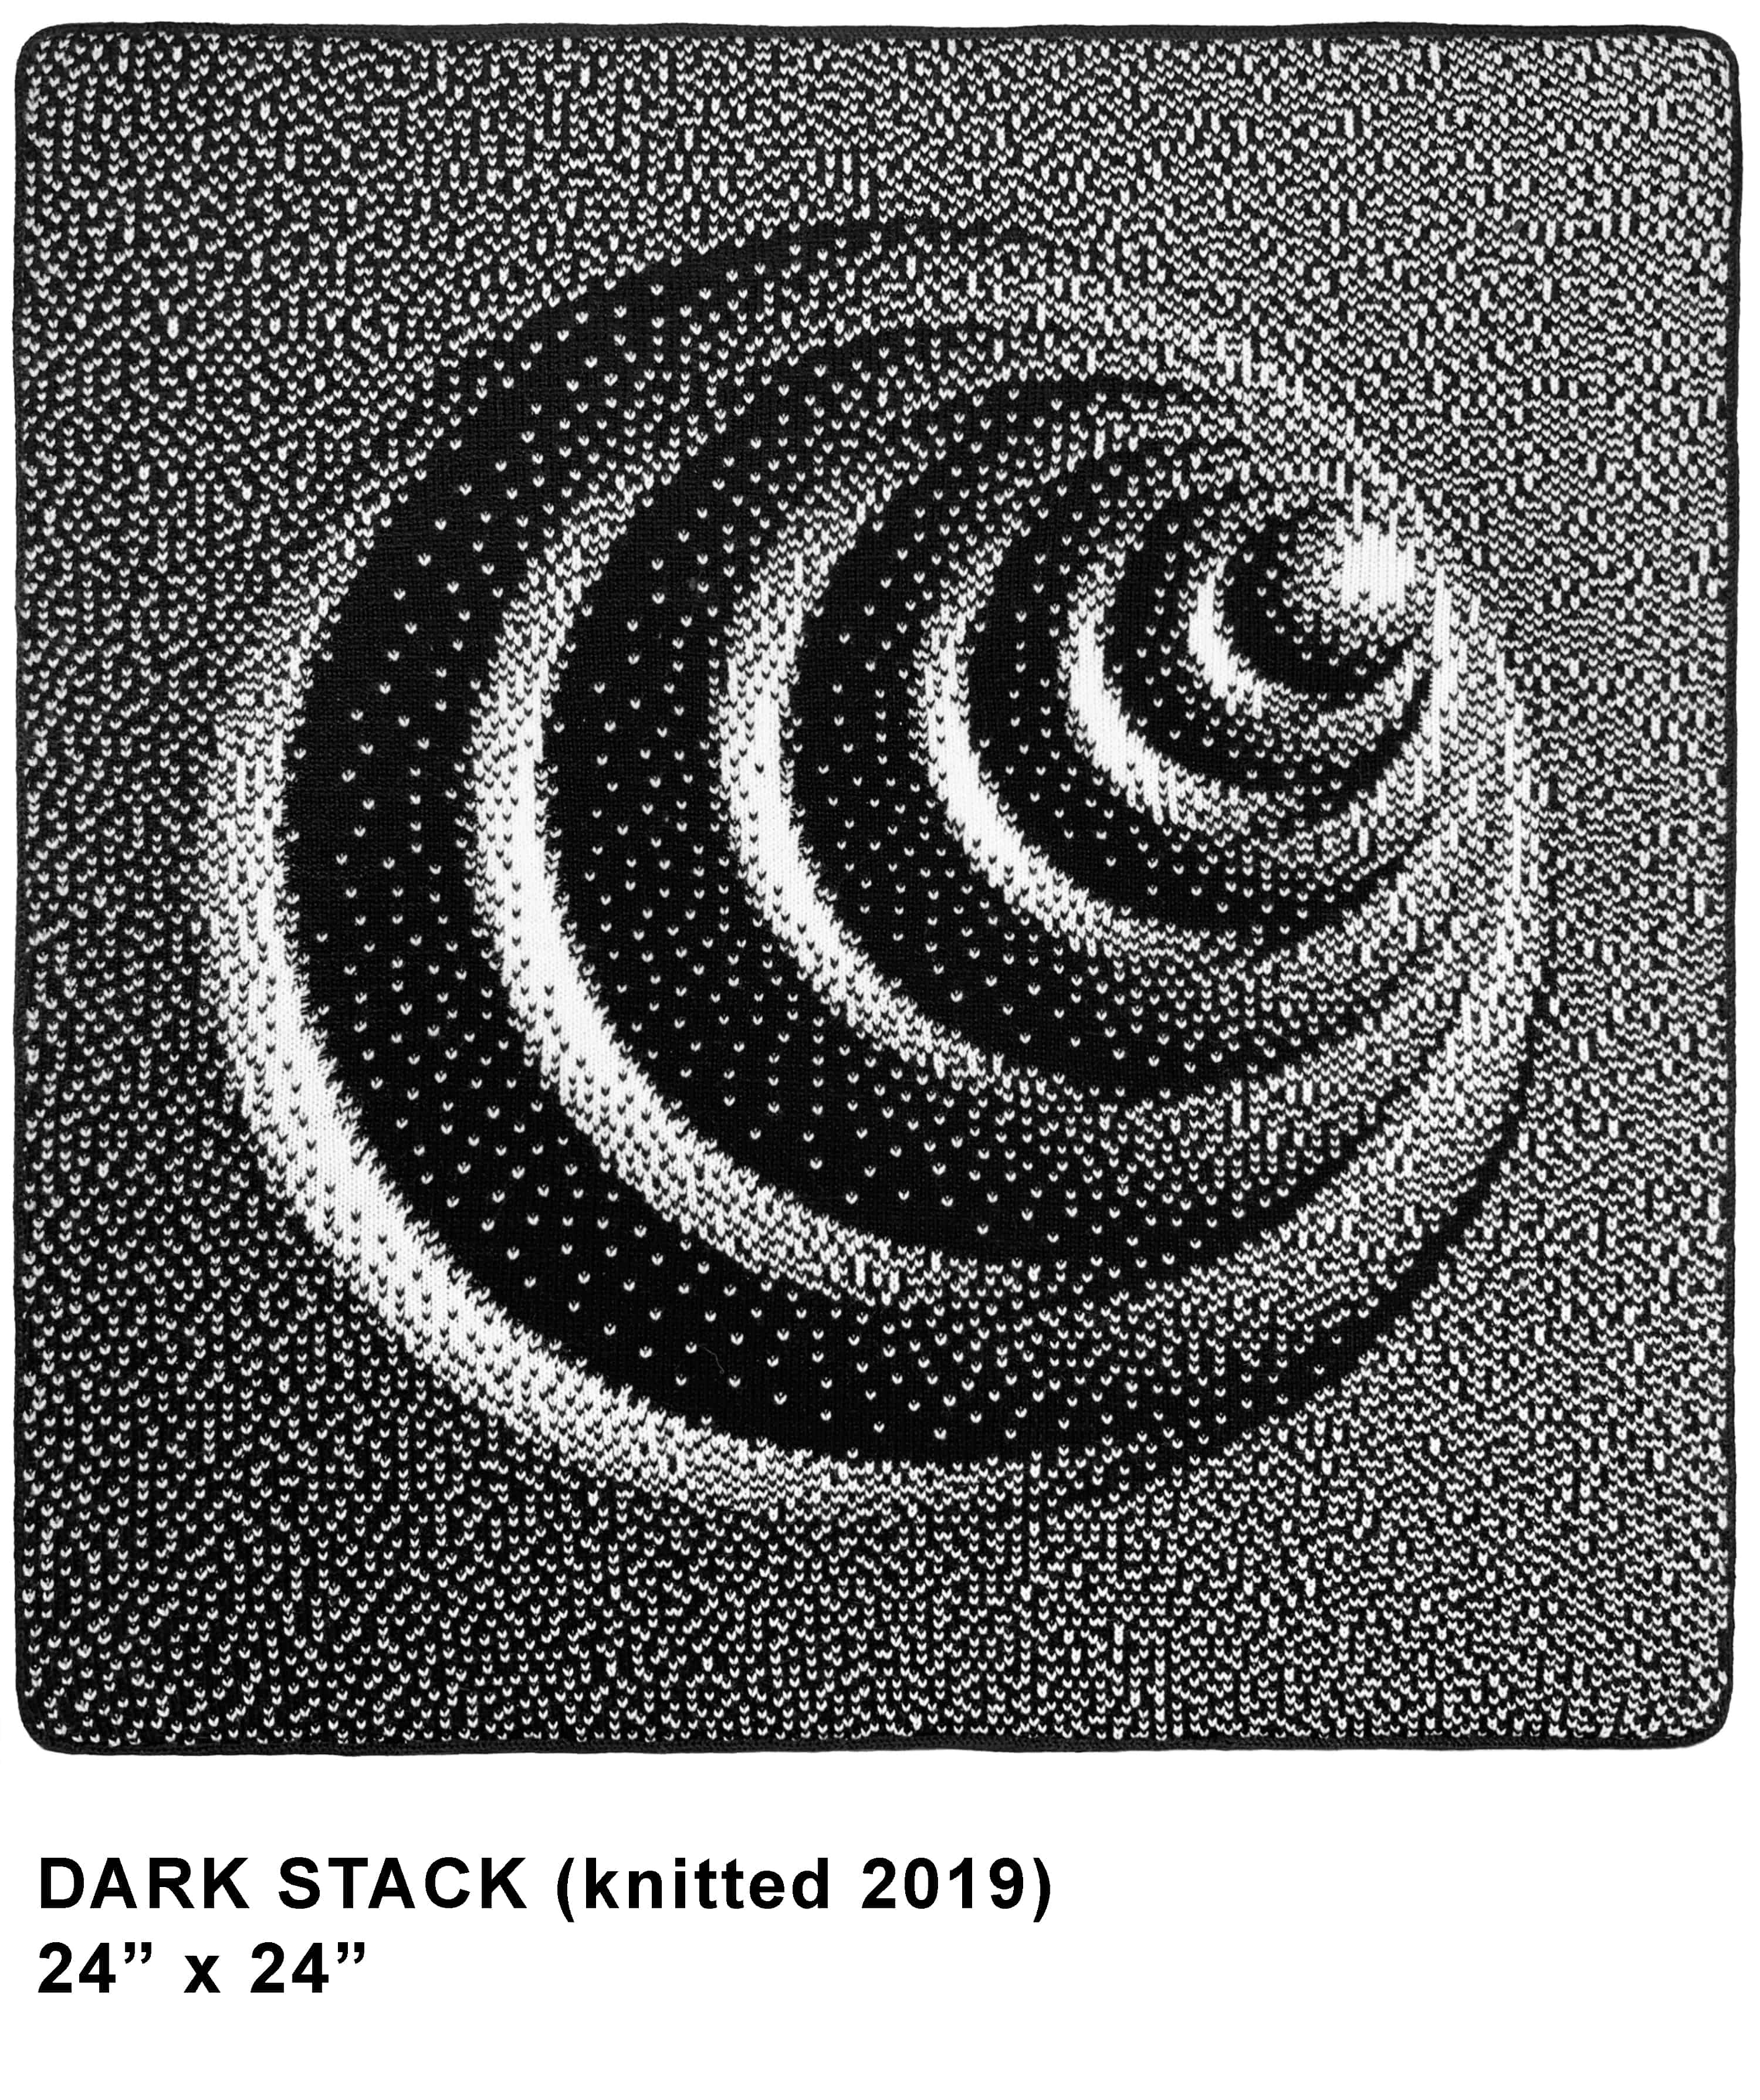 DARK STACK knitted template